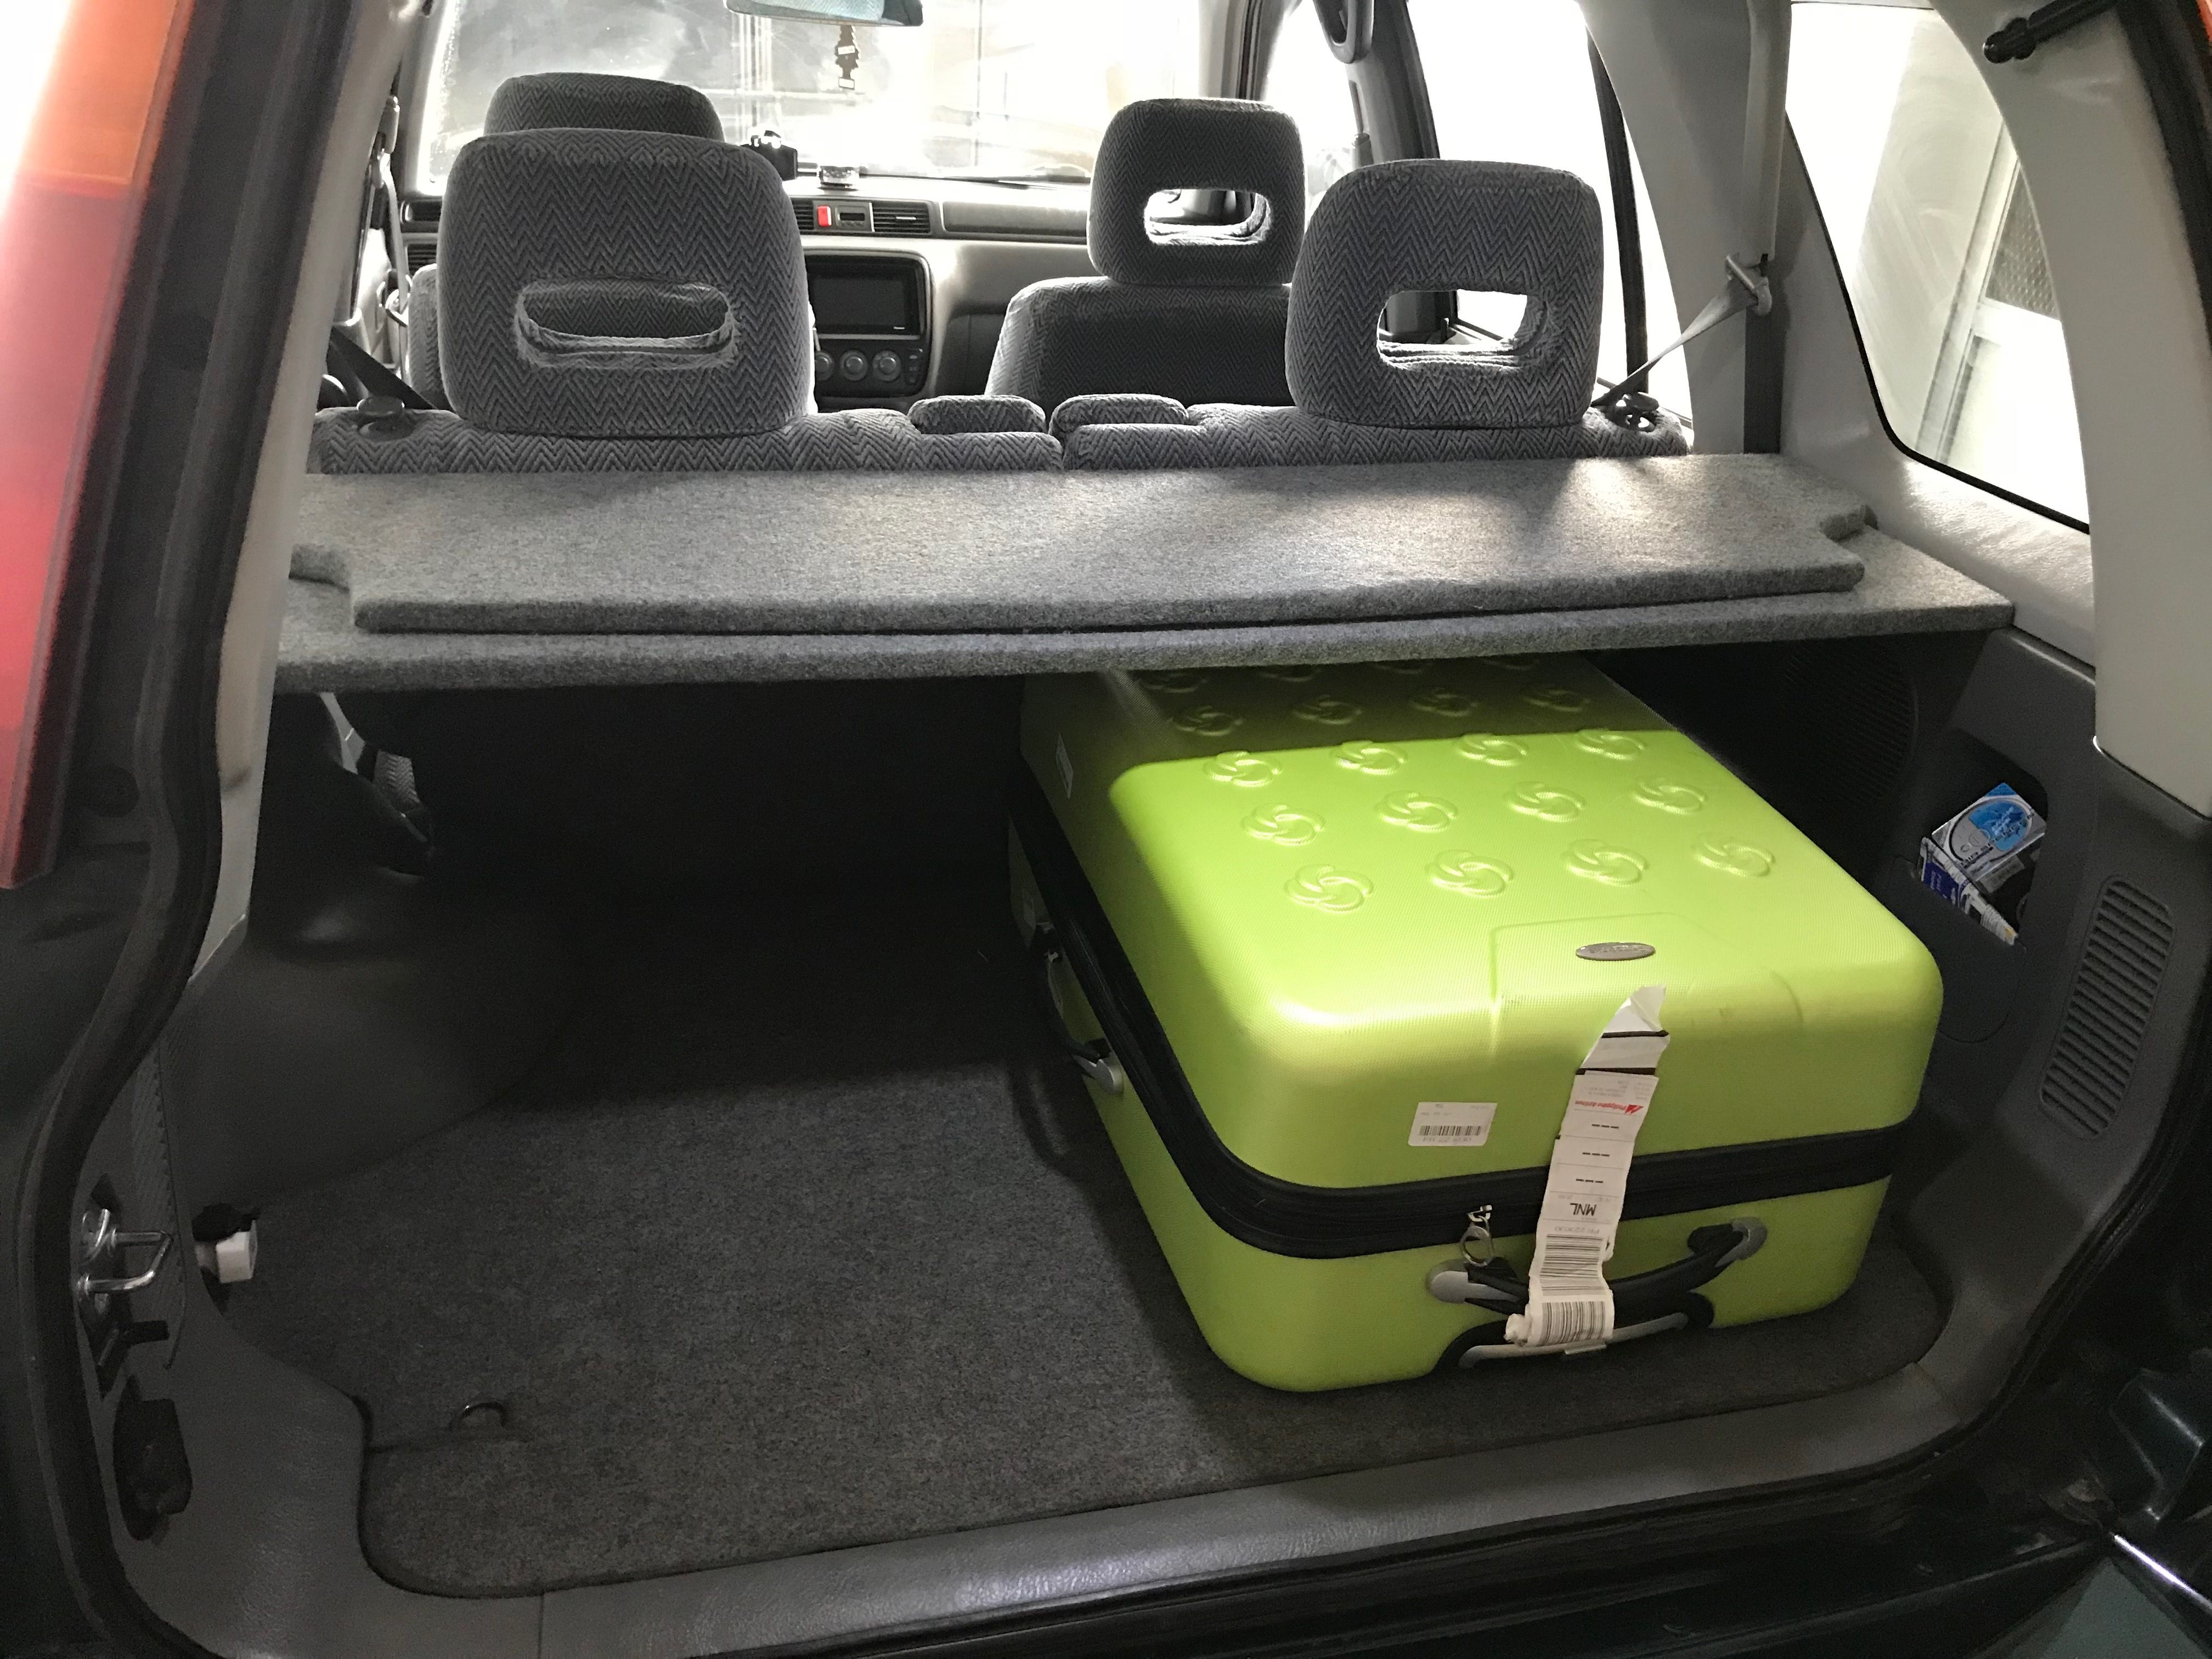 Open Cargo Trunks Are Vulnerable To Theft Have A Peace Of Mind When Leaving Your Favorite V Behind Hide Your Valuables With This Made To Order Cargo Cover For